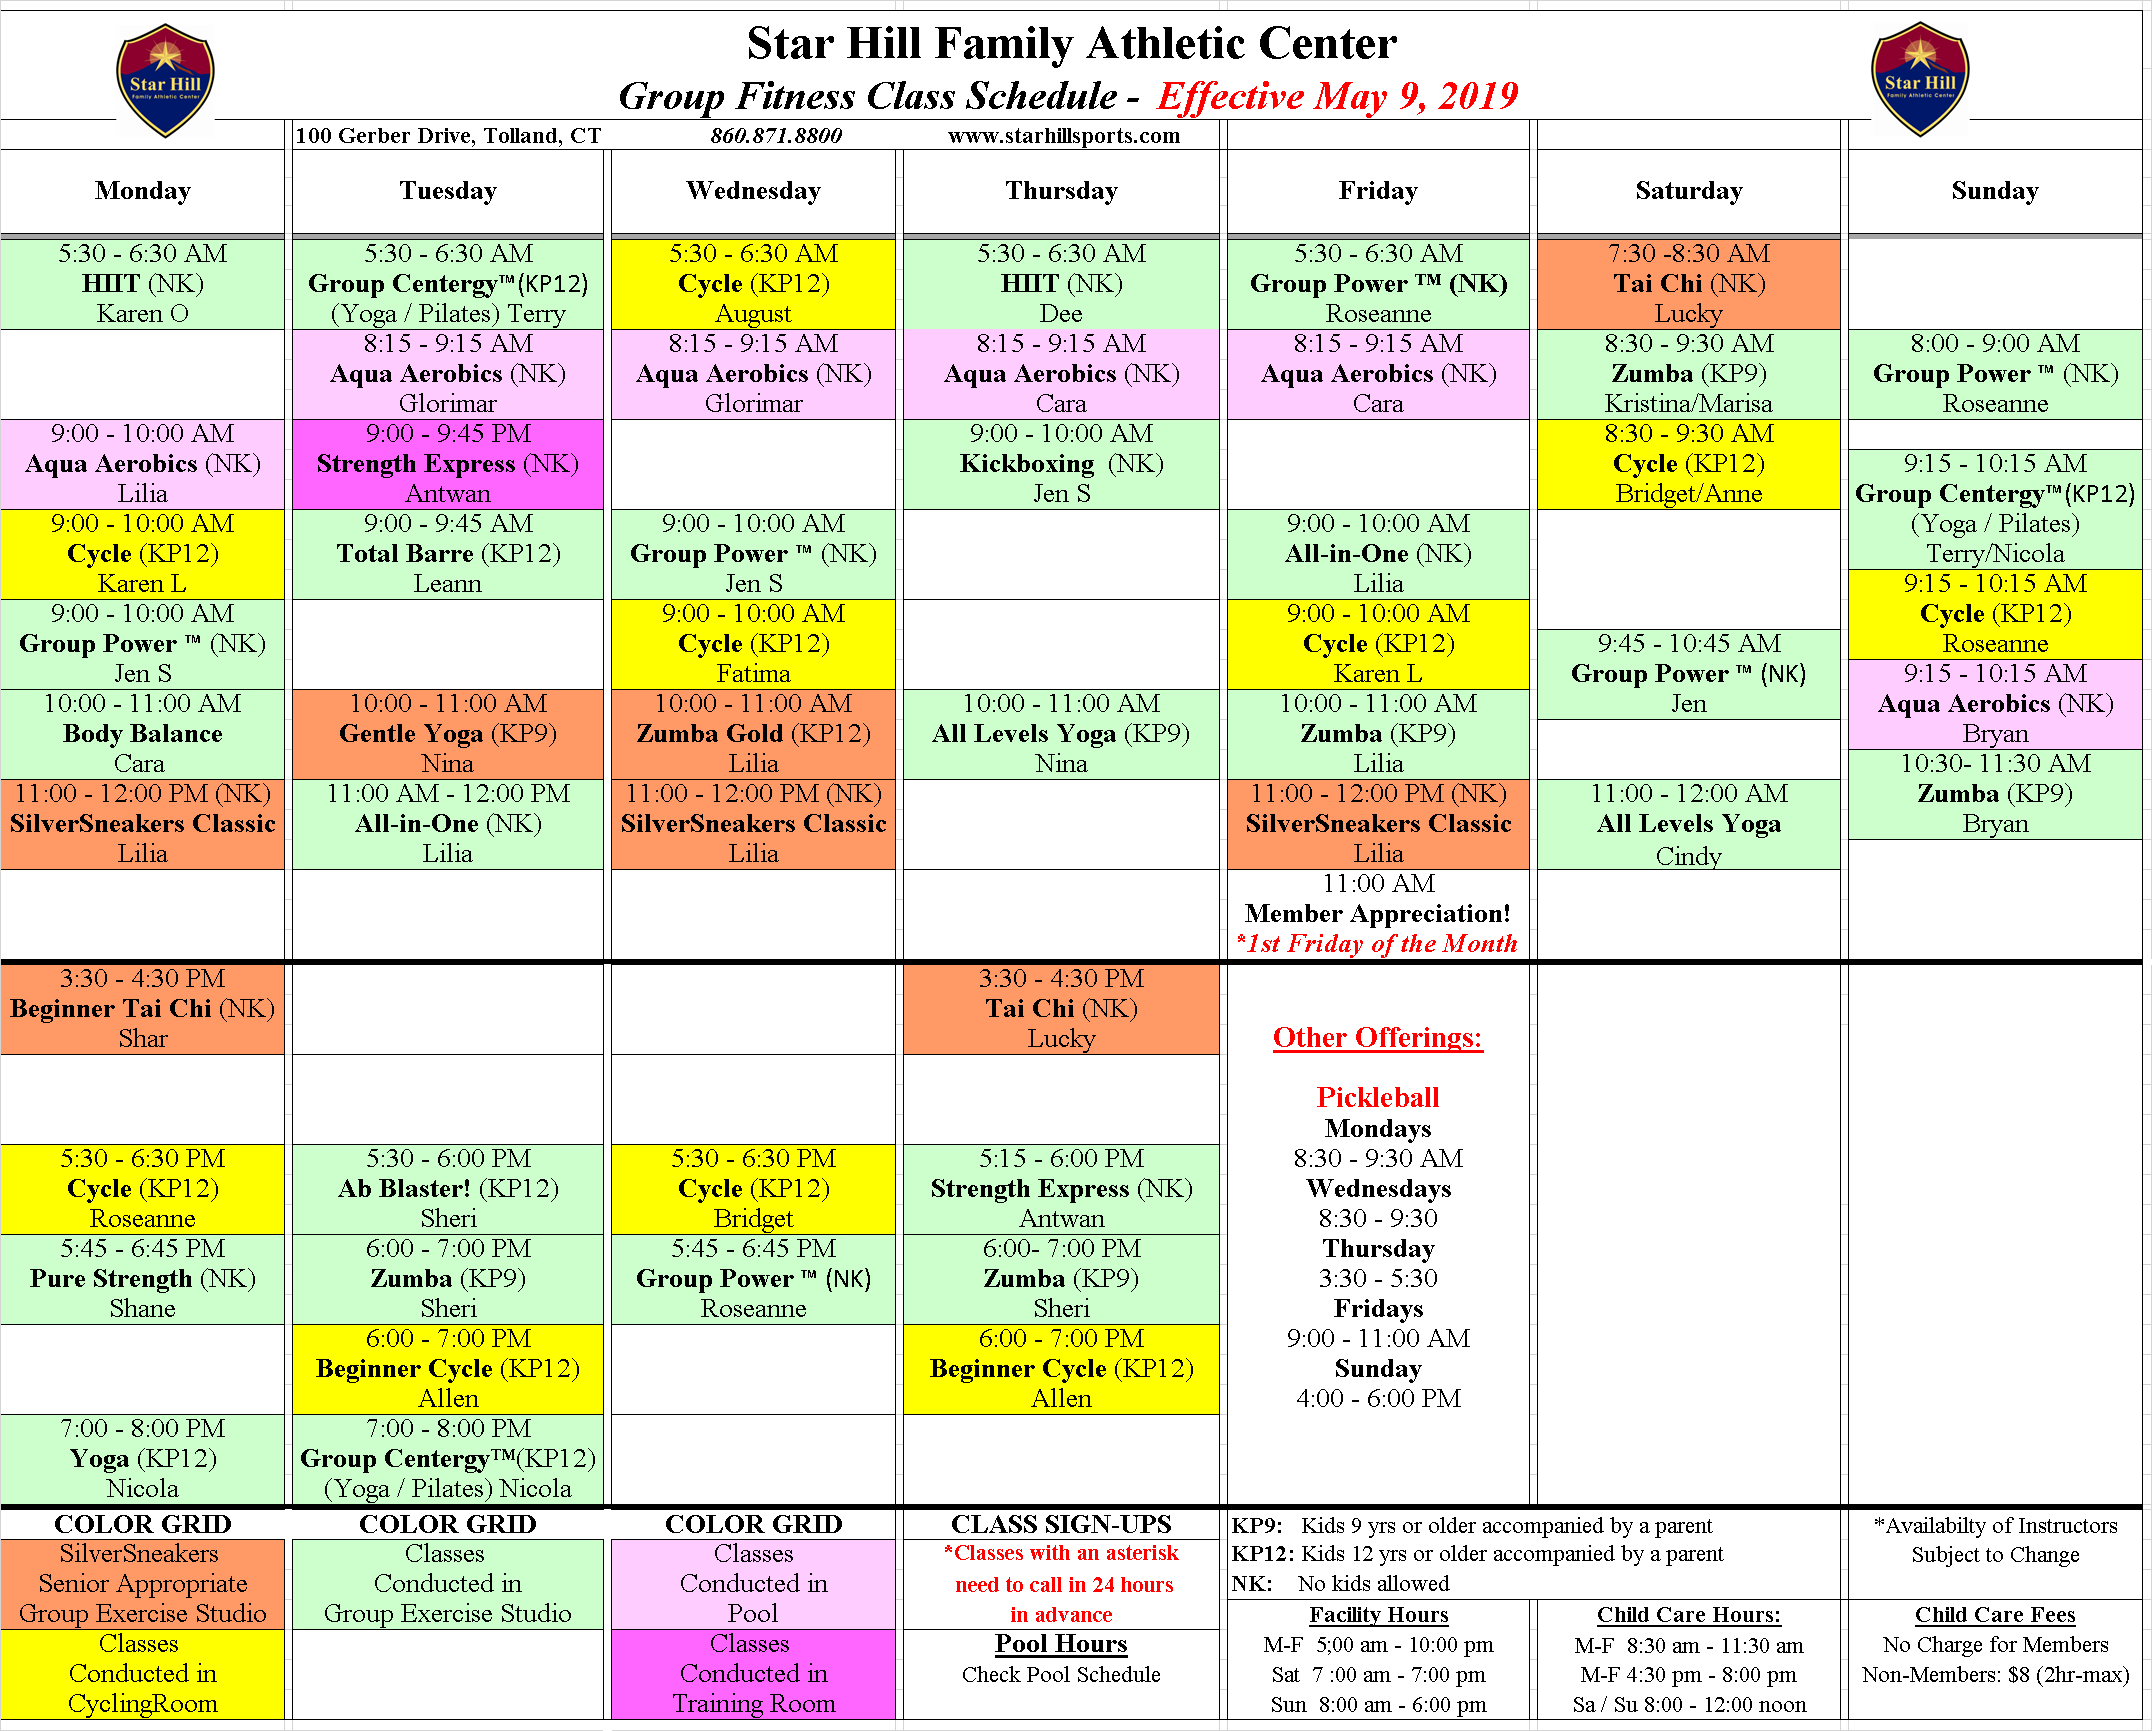 fit sched 5-9-19